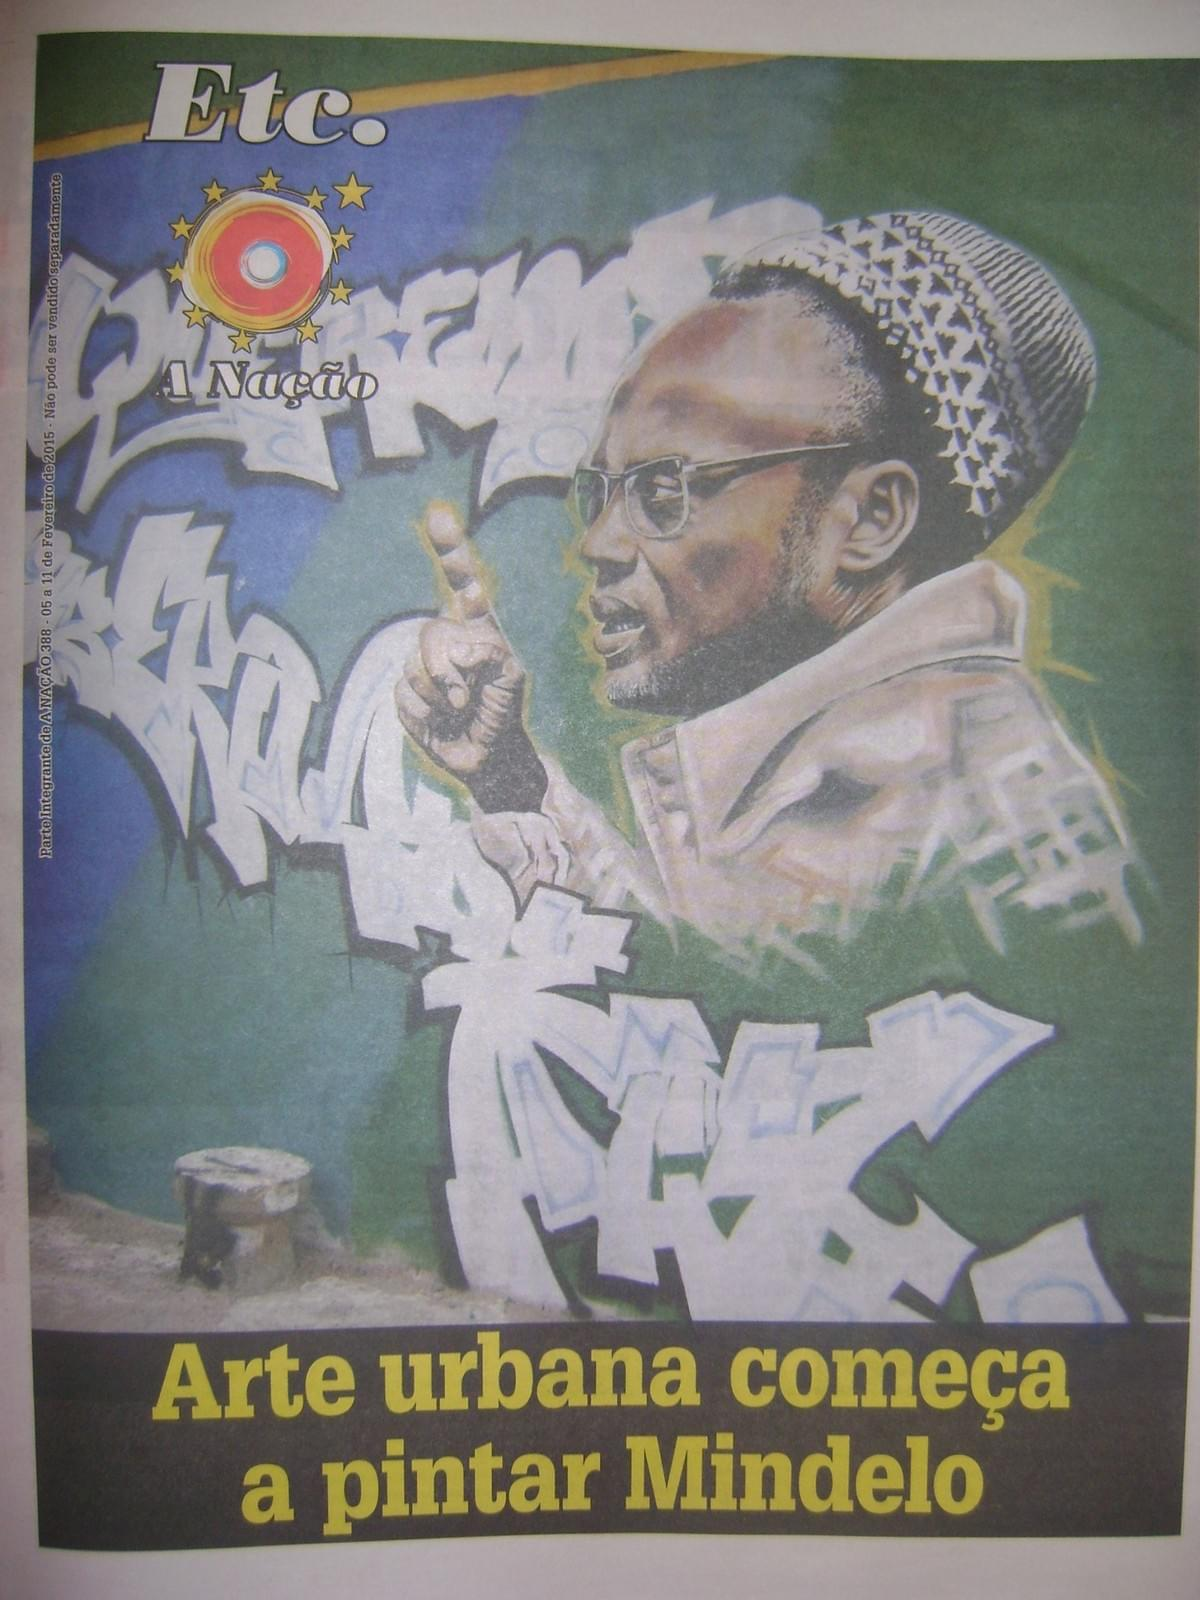 Sonvela Arte featured in national newspaper A Nação